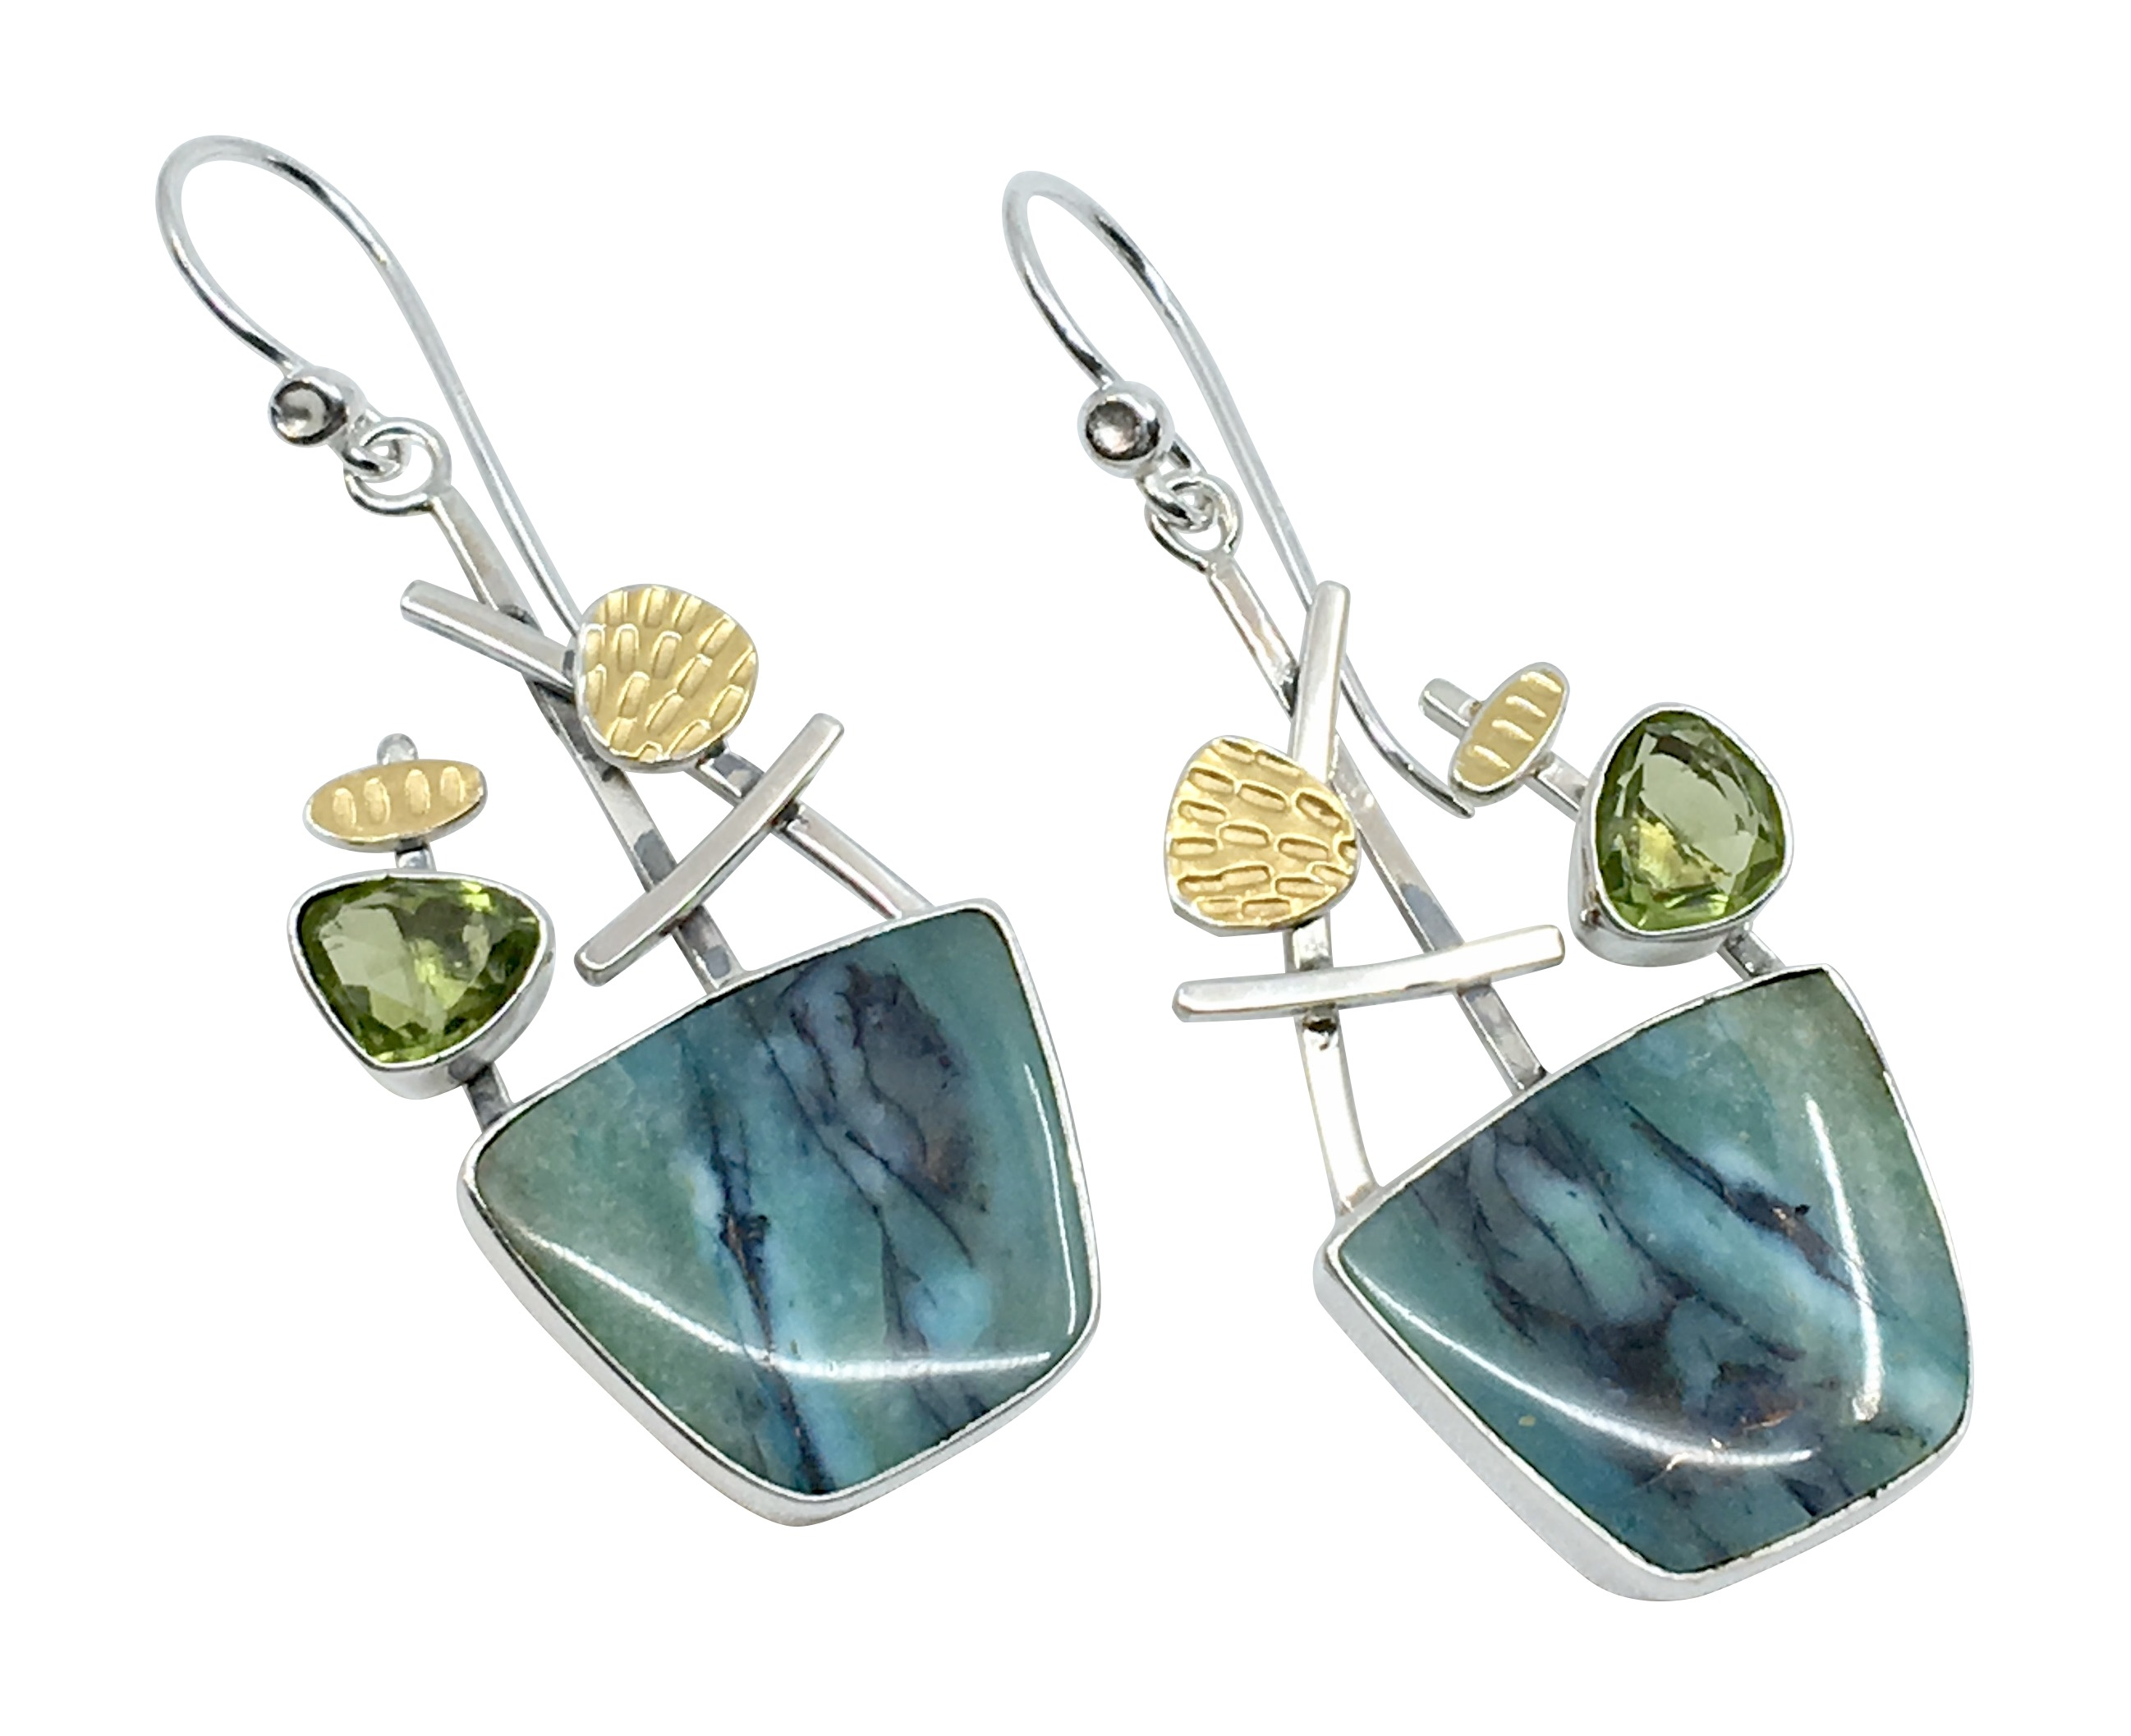 Opalwood / Peridot Earrings